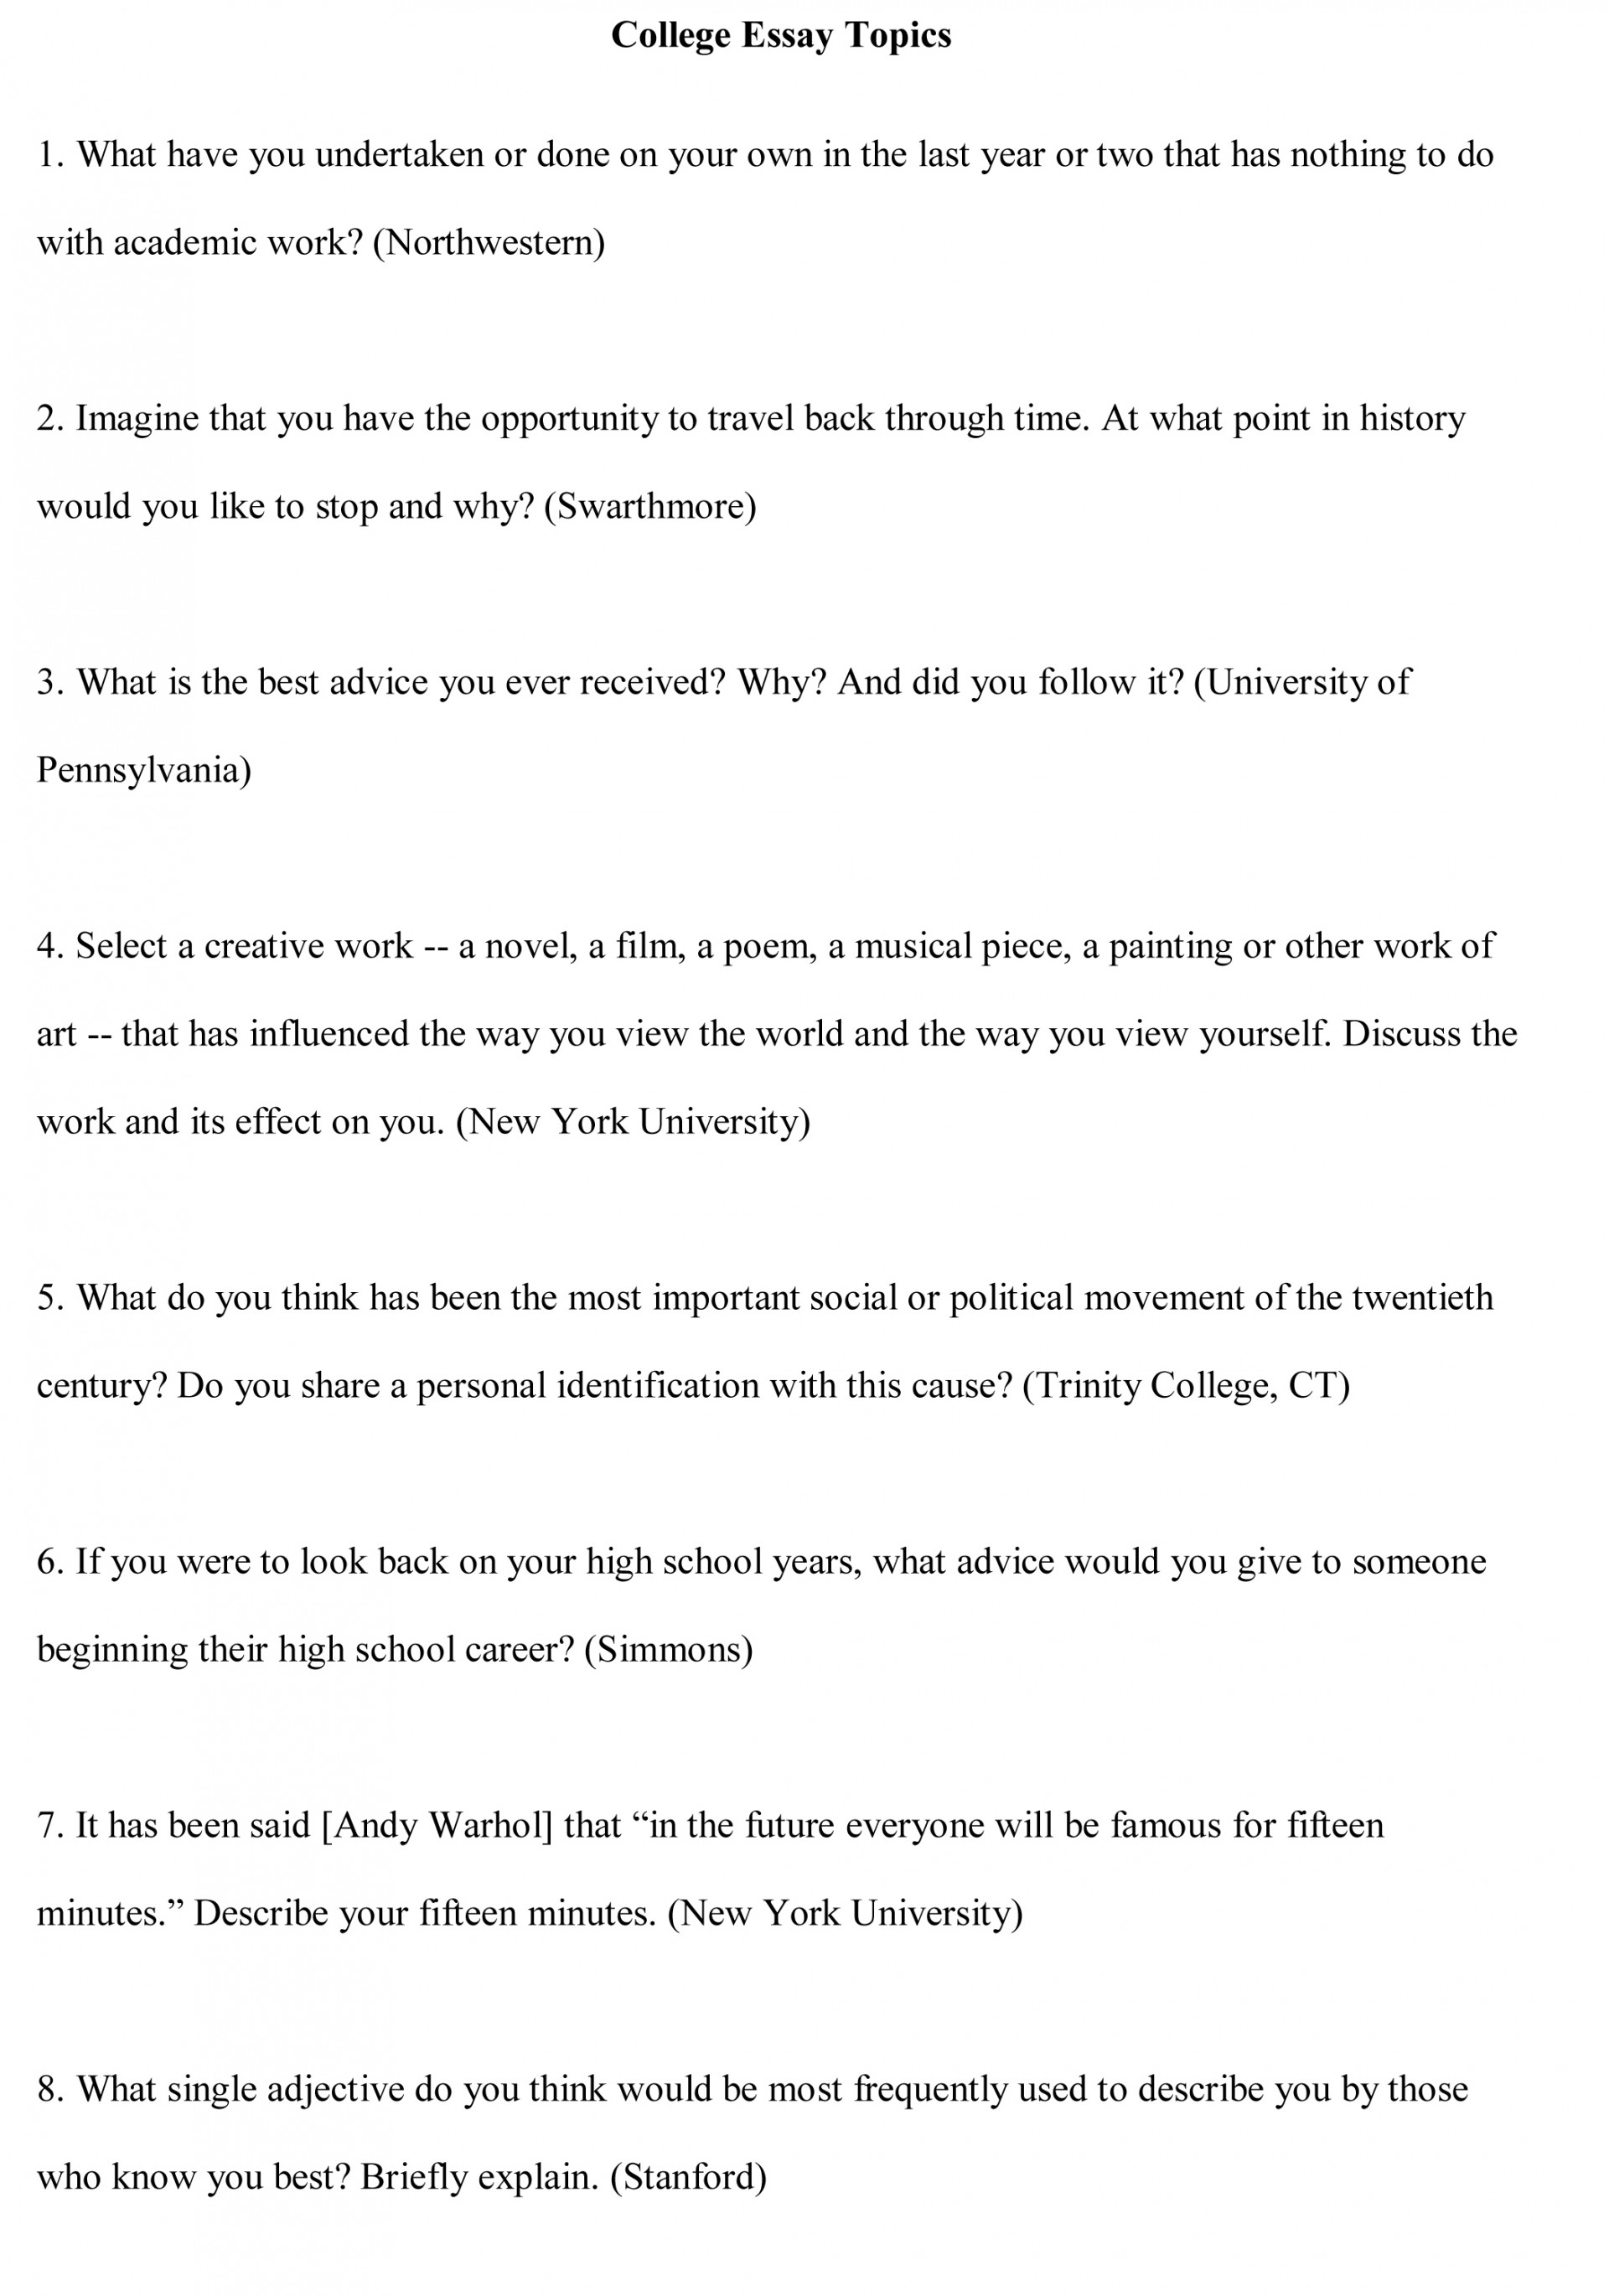 003 College Essay Topics Free Sample1 Example Topic Rare Ideas Admission Persuasive For 1920